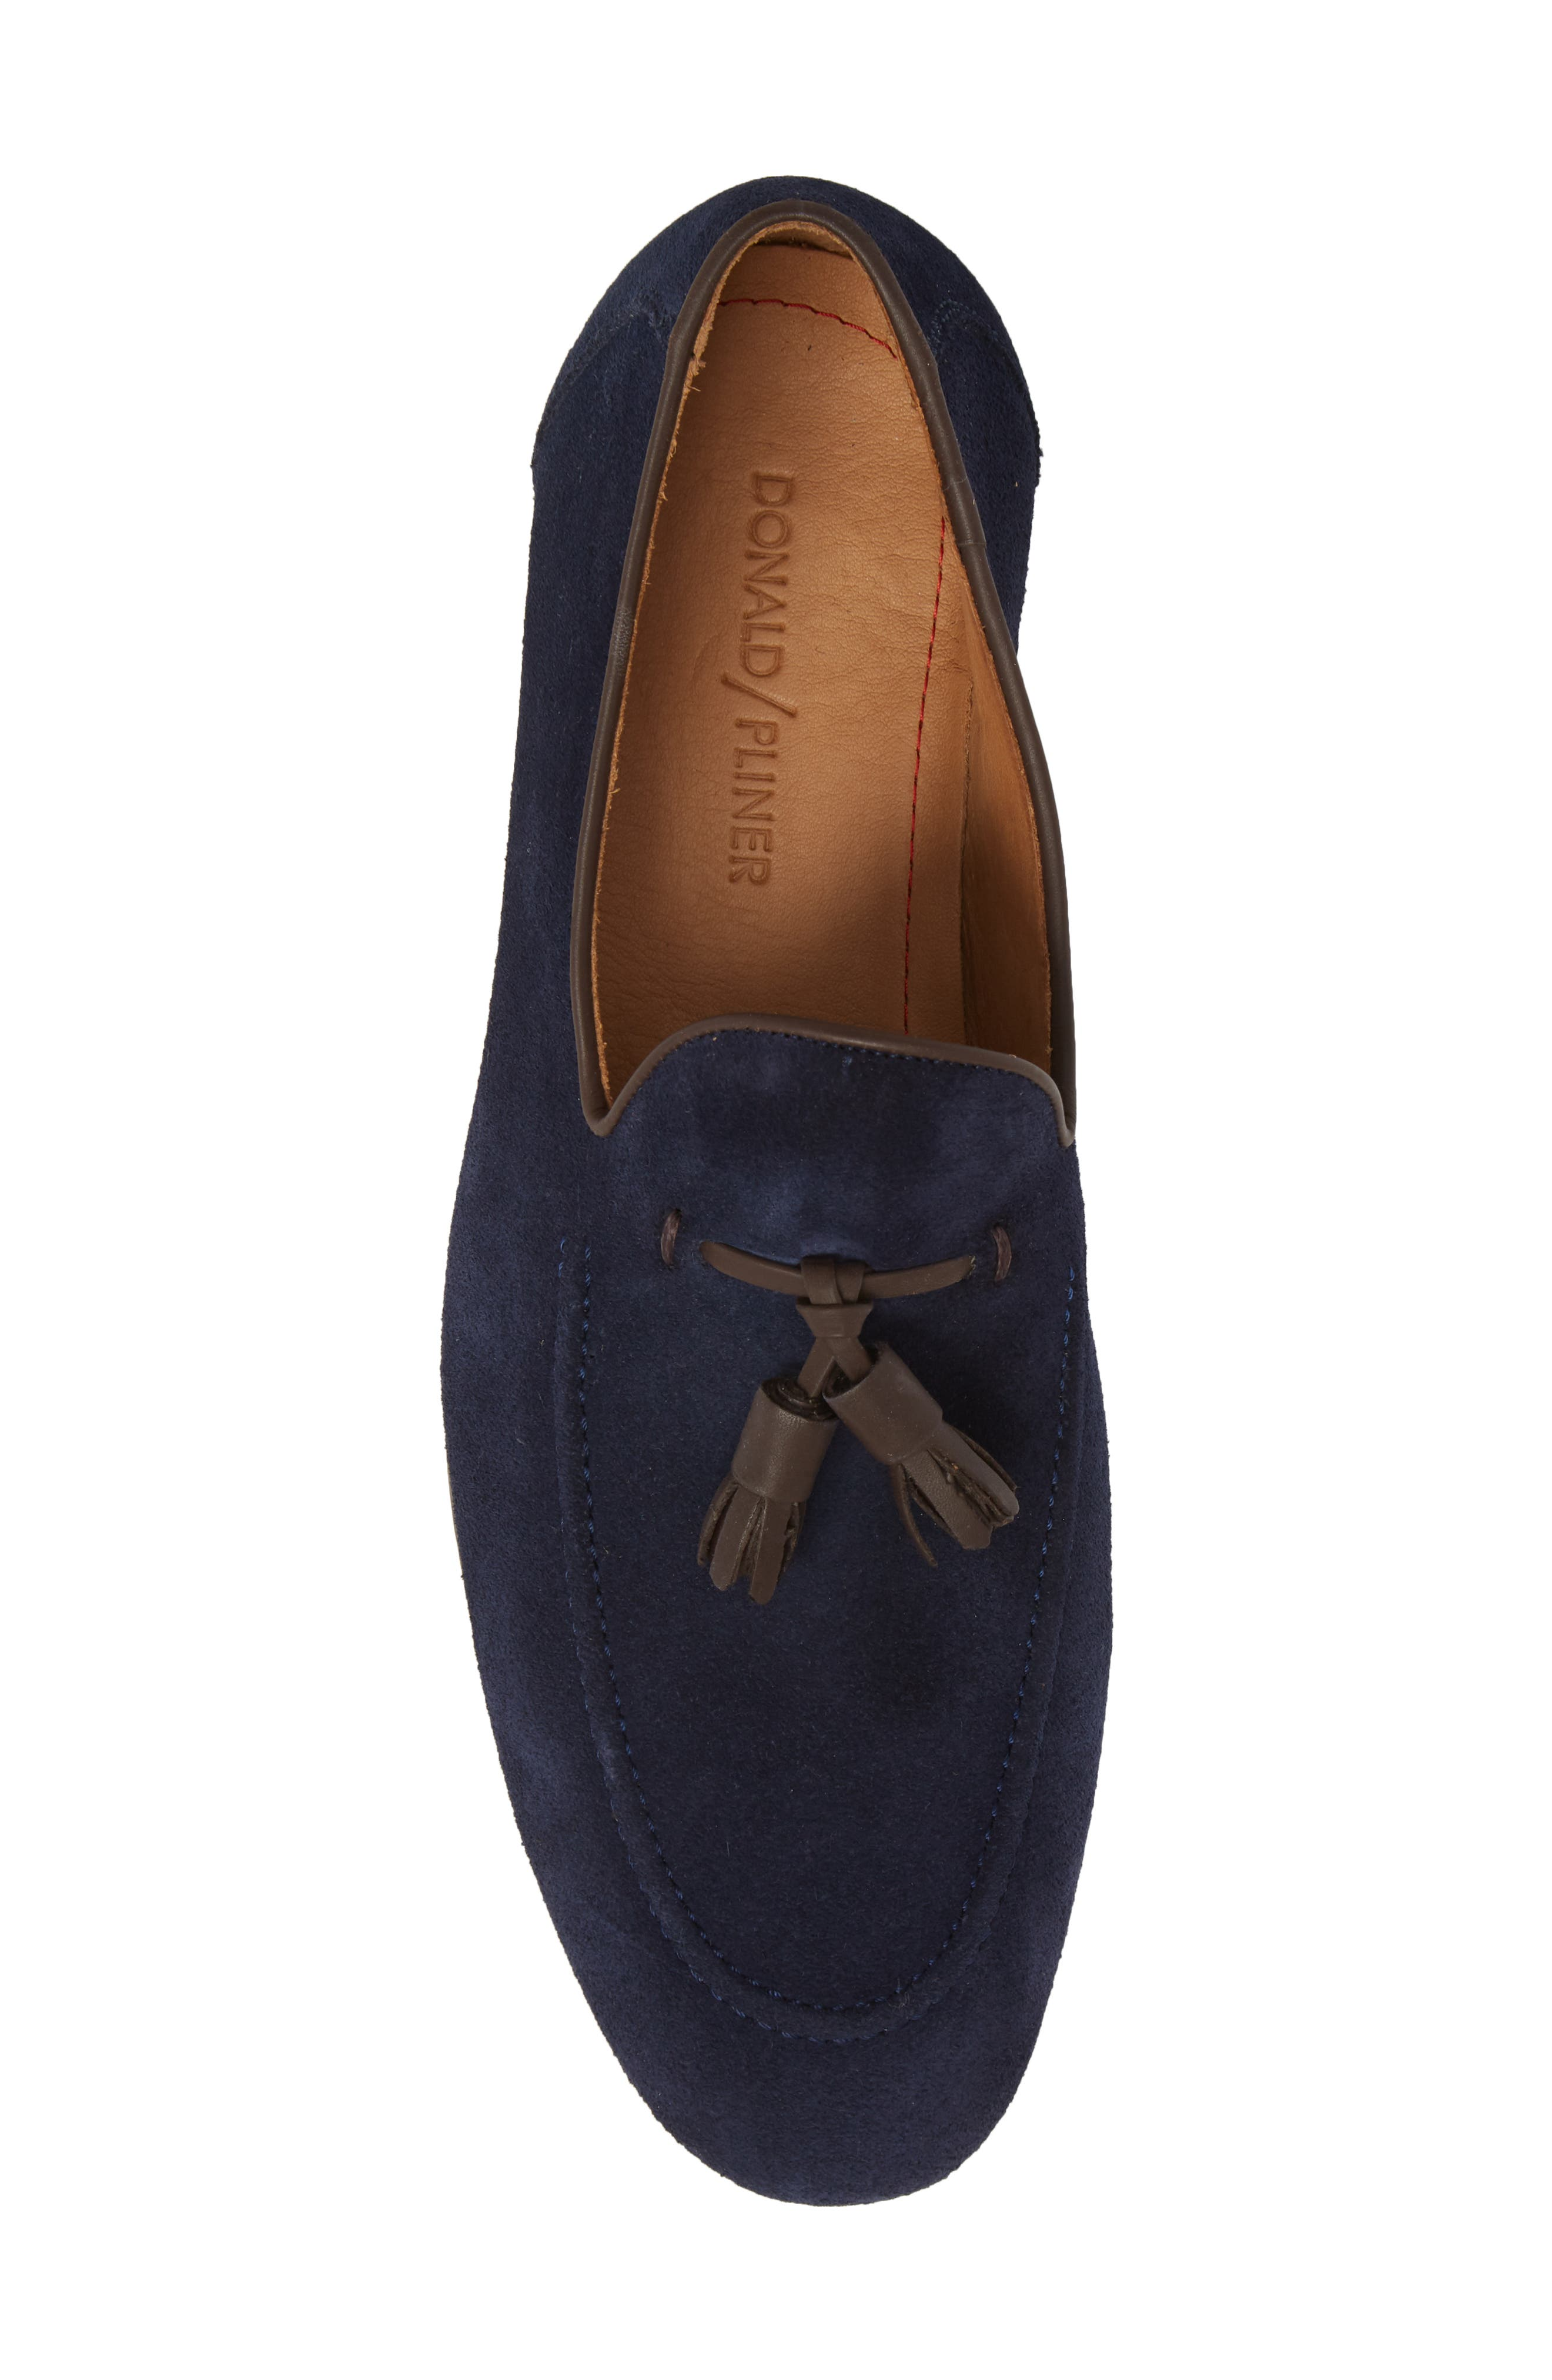 Ario Tassel Loafer,                             Alternate thumbnail 5, color,                             NAVY SUEDE